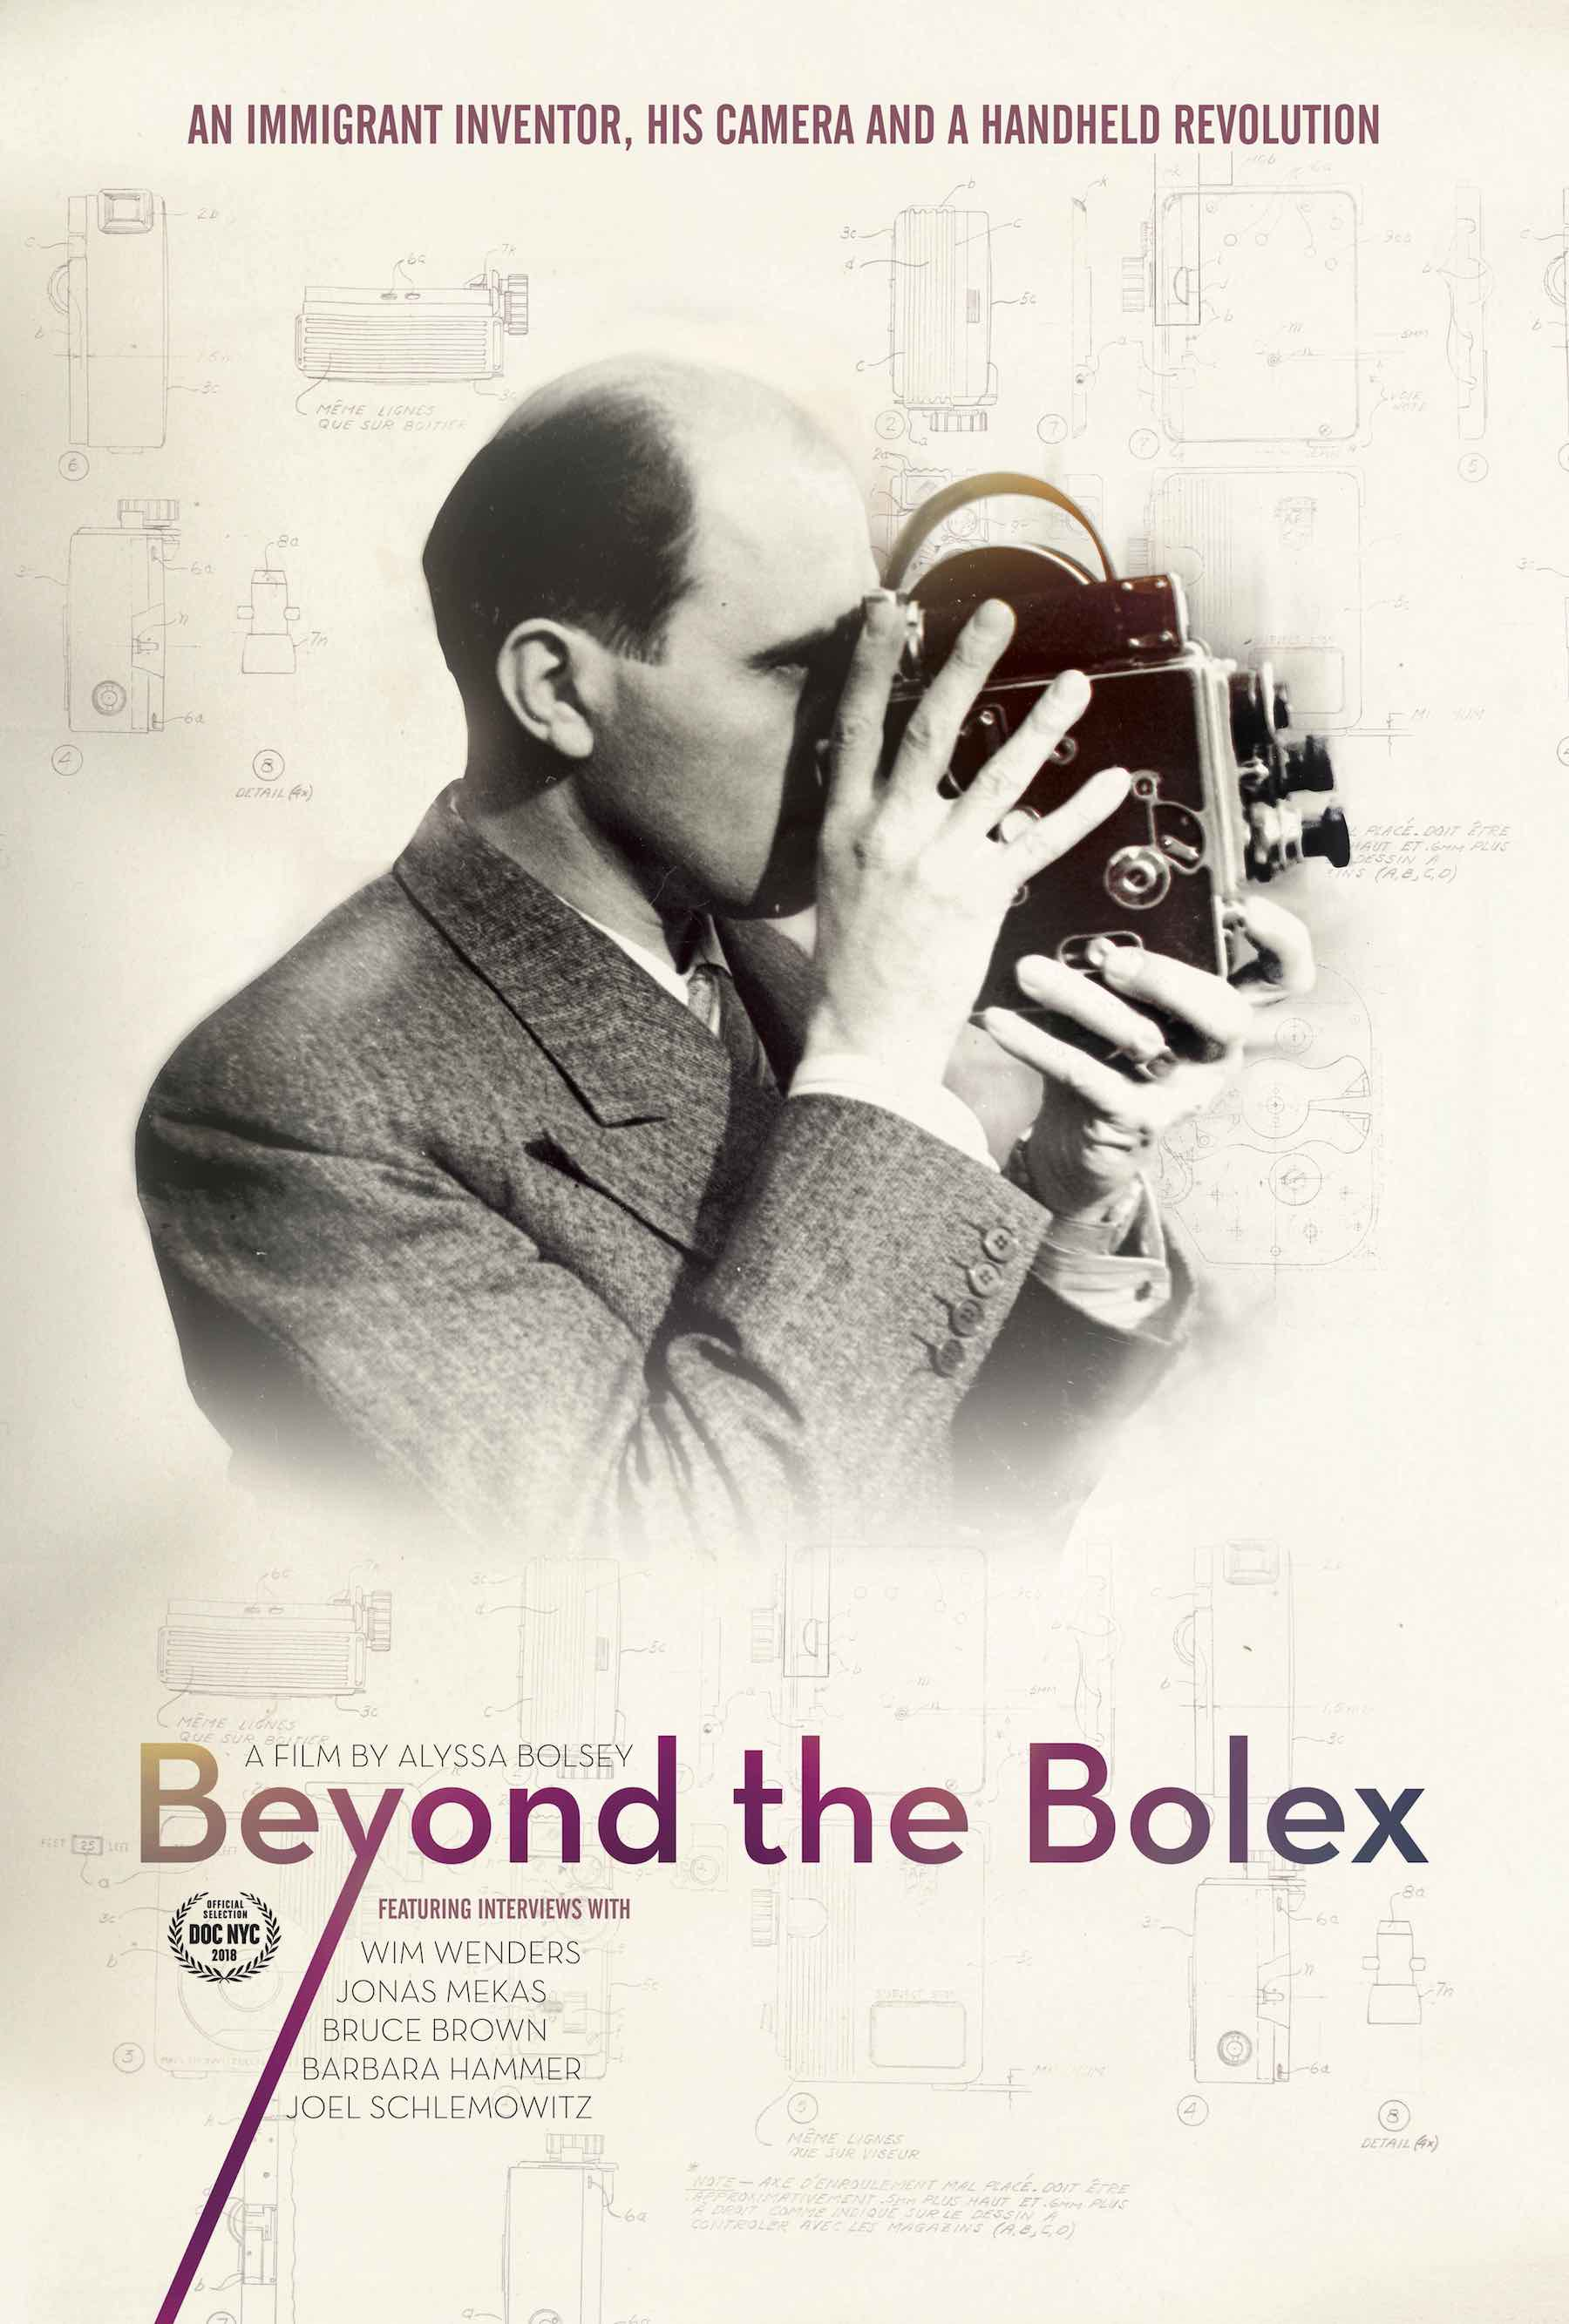 """Beyond the Bolex - 2018, USA/Switzerland, 91 min,in EnglishIn the 1920s immigrant inventor Jacques Bolsey aimed to disrupt the early film industry with a motion picture camera for the masses: the iconic Bolex. Over 90 years later, filmmaker Alyssa Bolsey pieces together the fragments of a forgotten family archive to reveal the epic story of her great-grandfather in """"Beyond the Bolex."""" Interviewing family members and renowned filmmakers, Alyssa travels to Switzerland, and delves into Jacques' personal diary, film reels and collected images in order to understand the man and his impact on generations of filmmakers. More about the film here."""